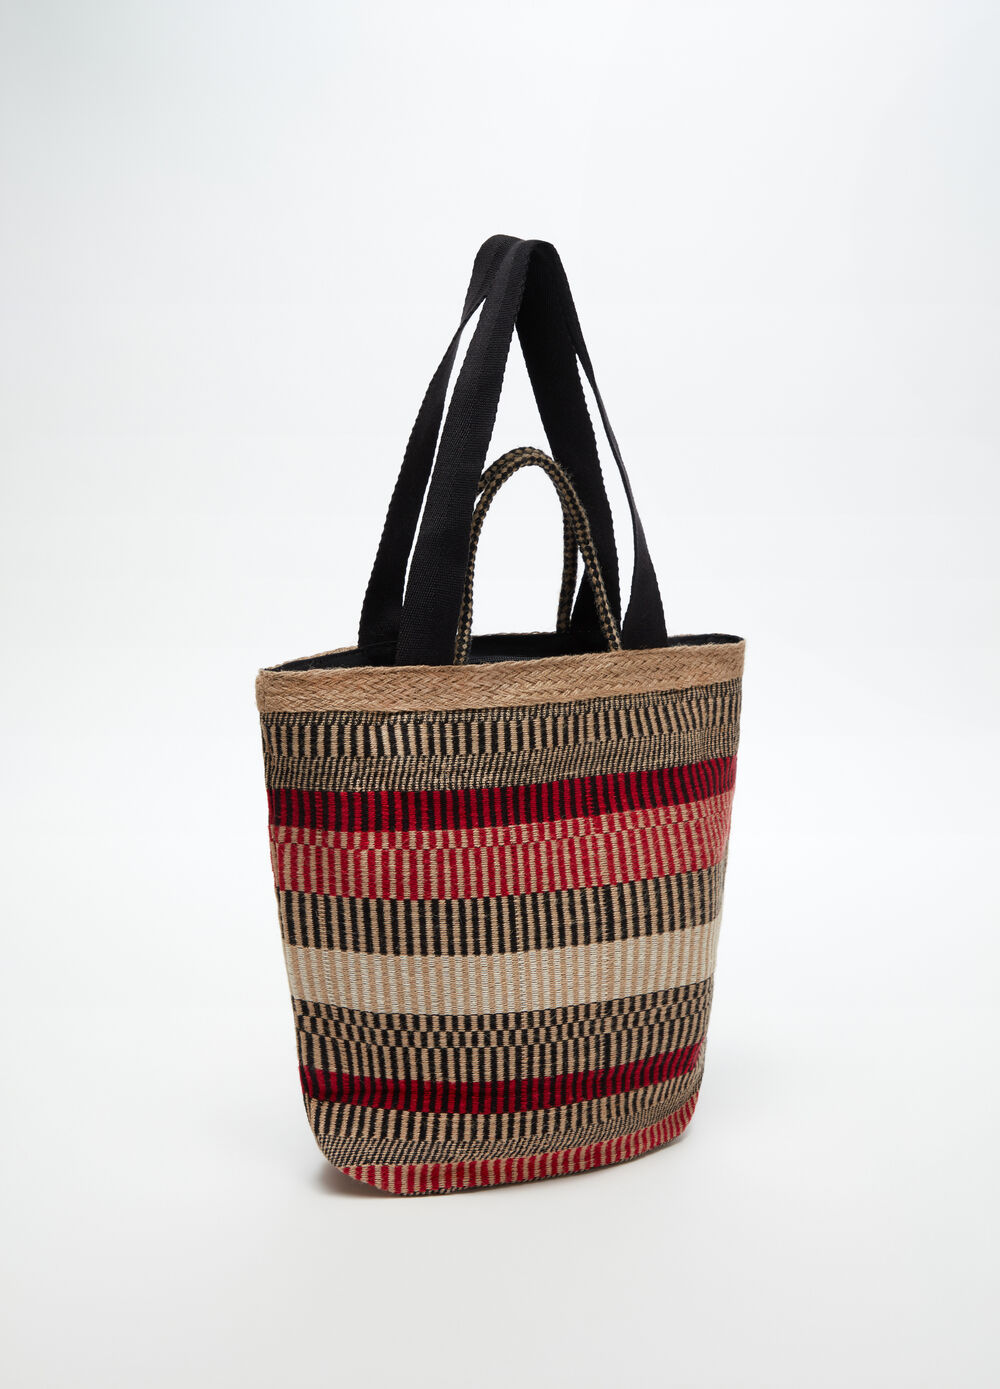 Beach bag with striped jute